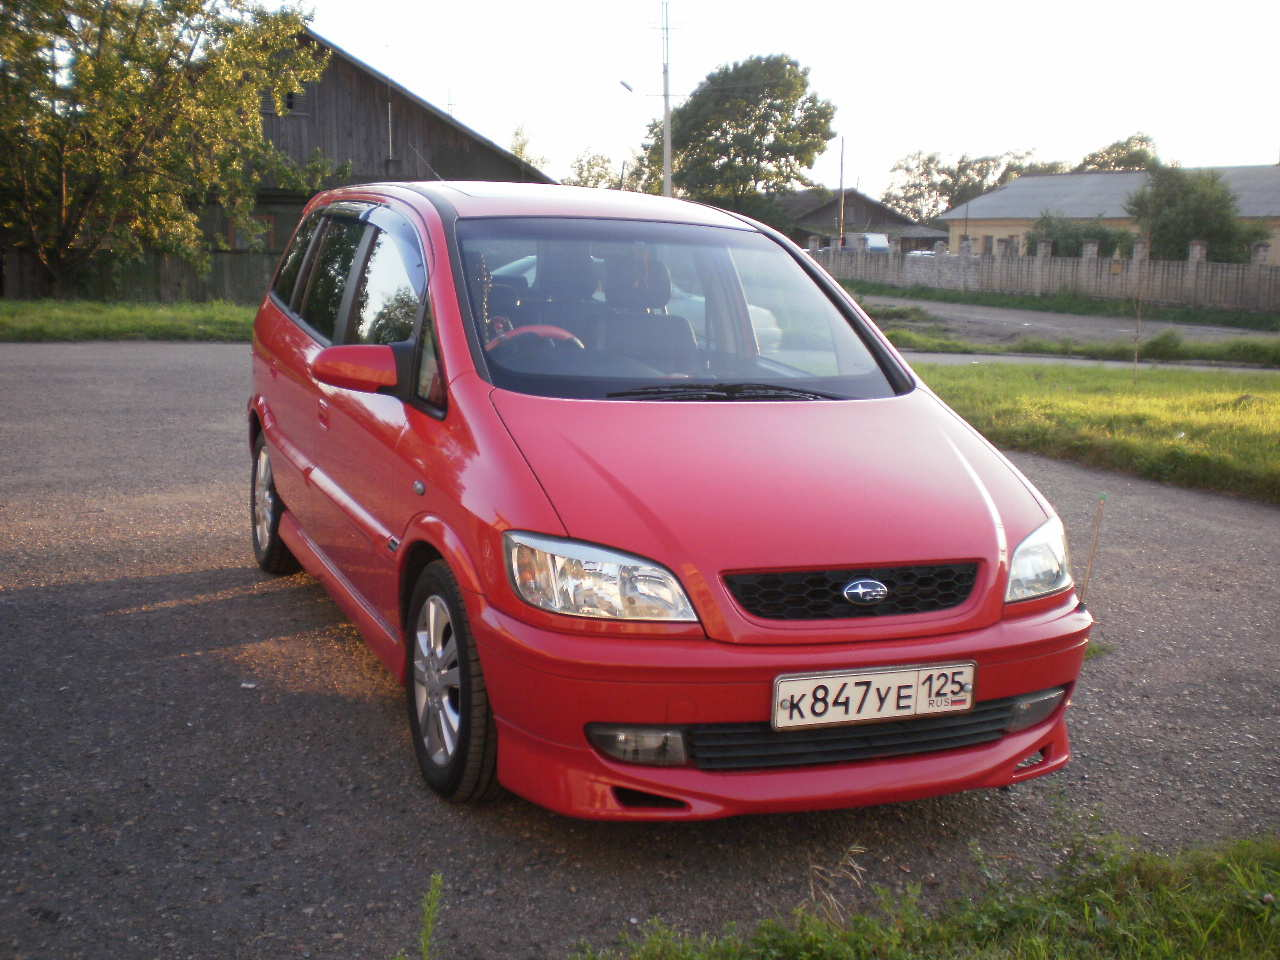 2003 Subaru Traviq photo - 2